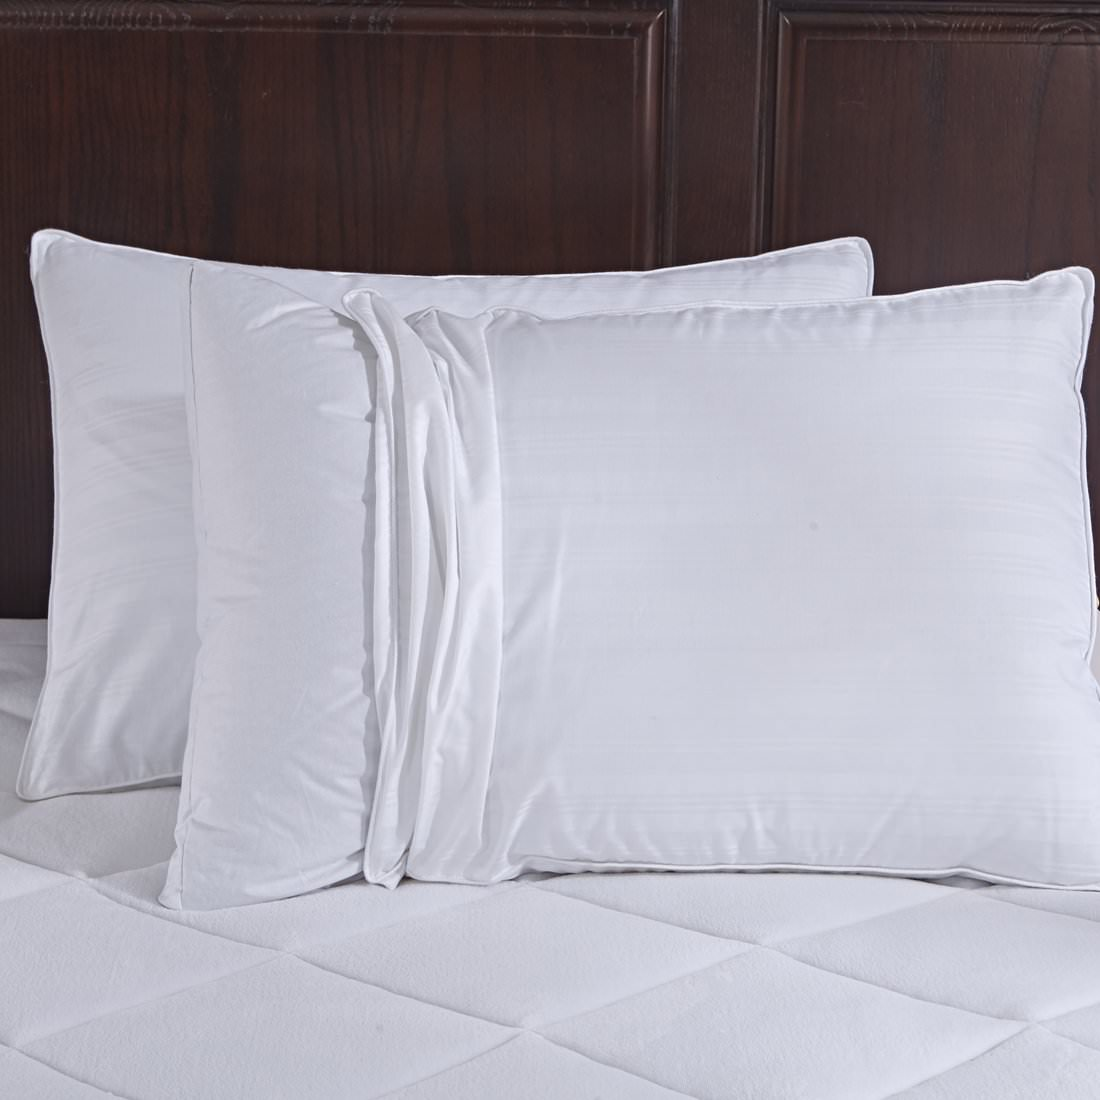 Puredown 600 Fill Power Goose Down Gusset Pillow, With 2 Free Pillow Protectors, 100%... by Pure Down